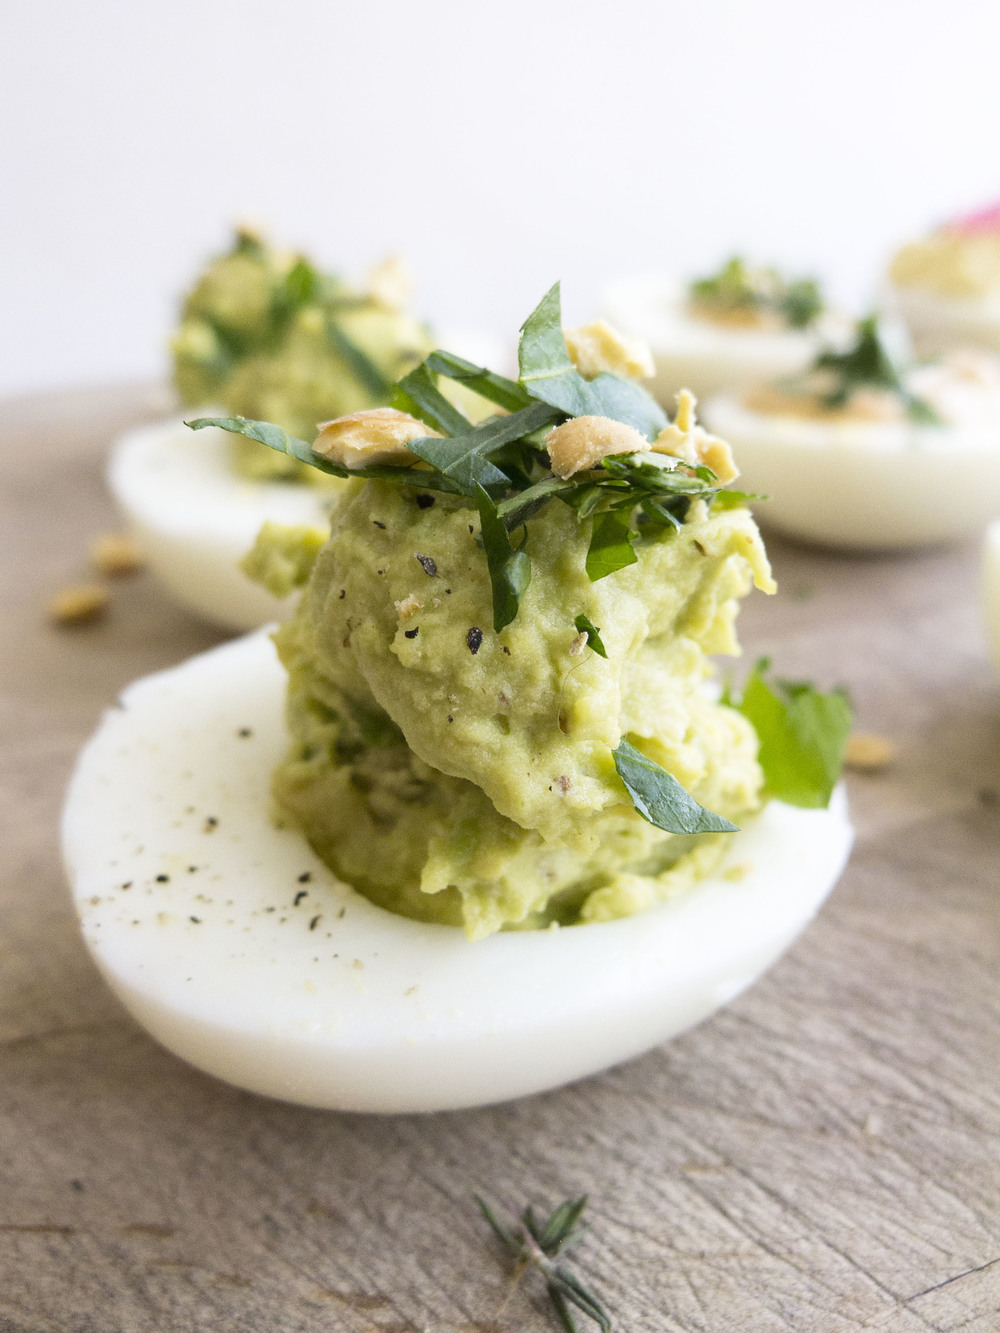 deviled eggs 3 ways: herbal with avocado, lemon and herbs